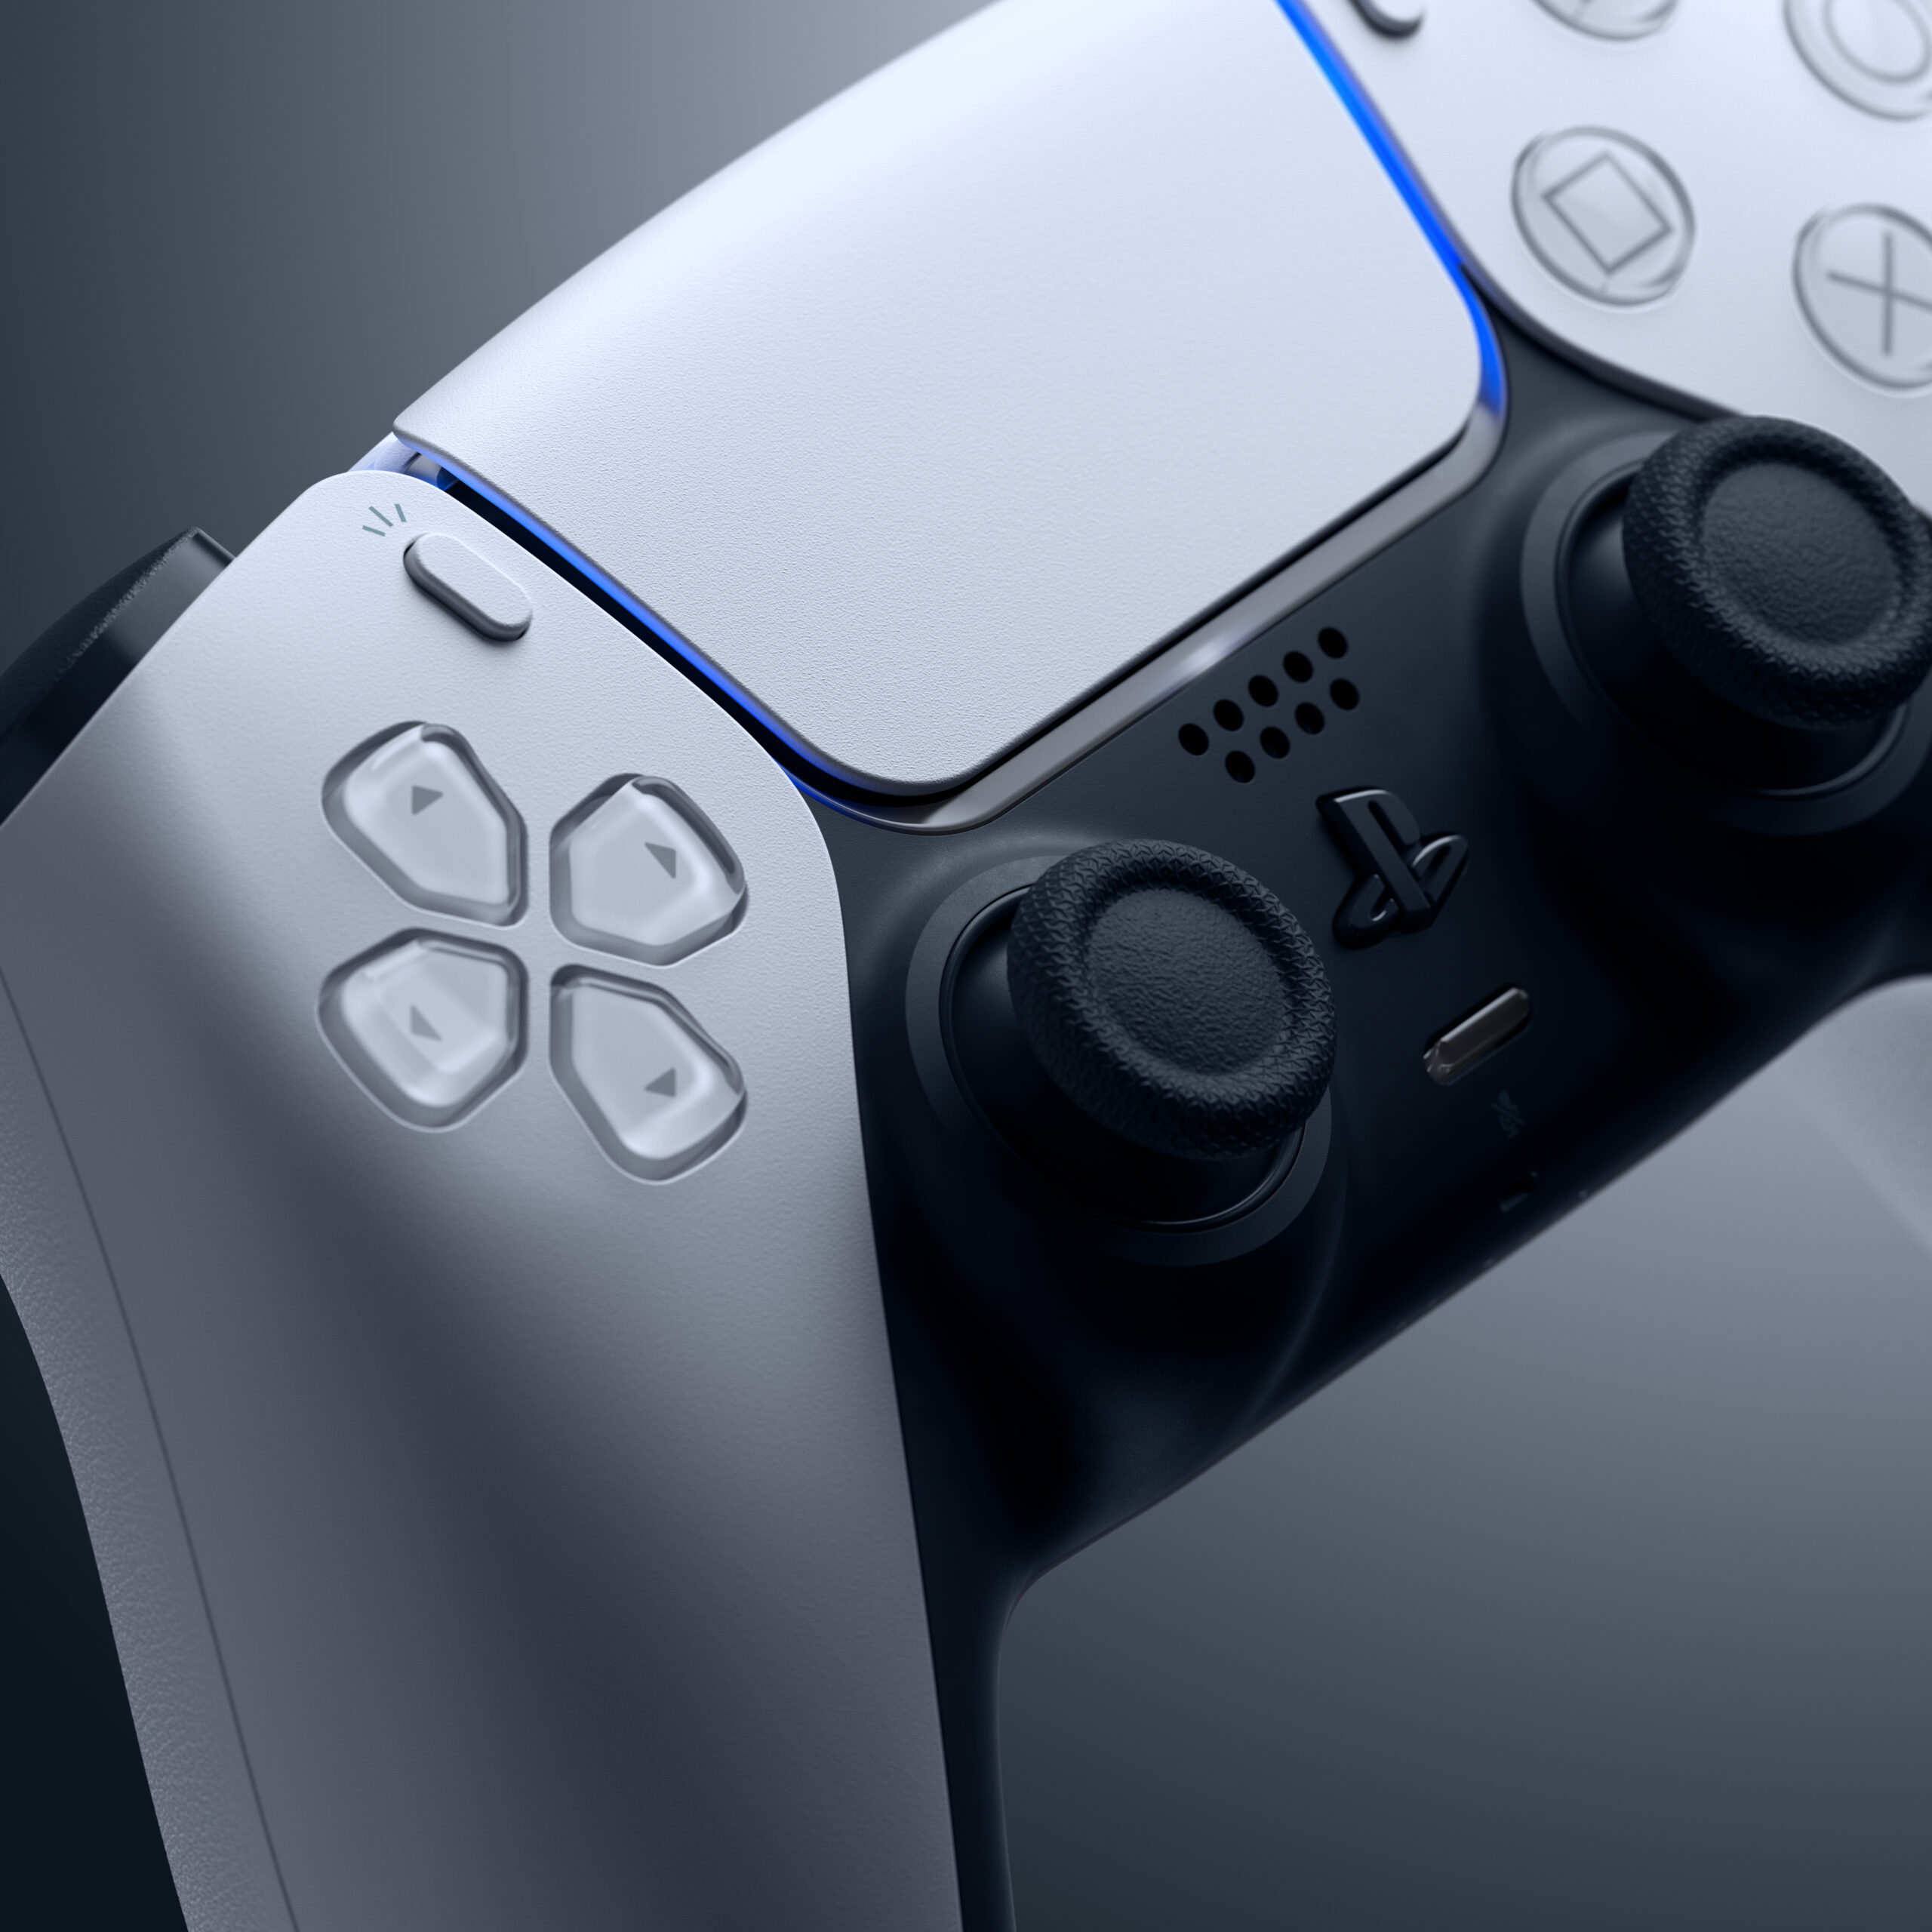 PS5 Hardware and Accessories 15